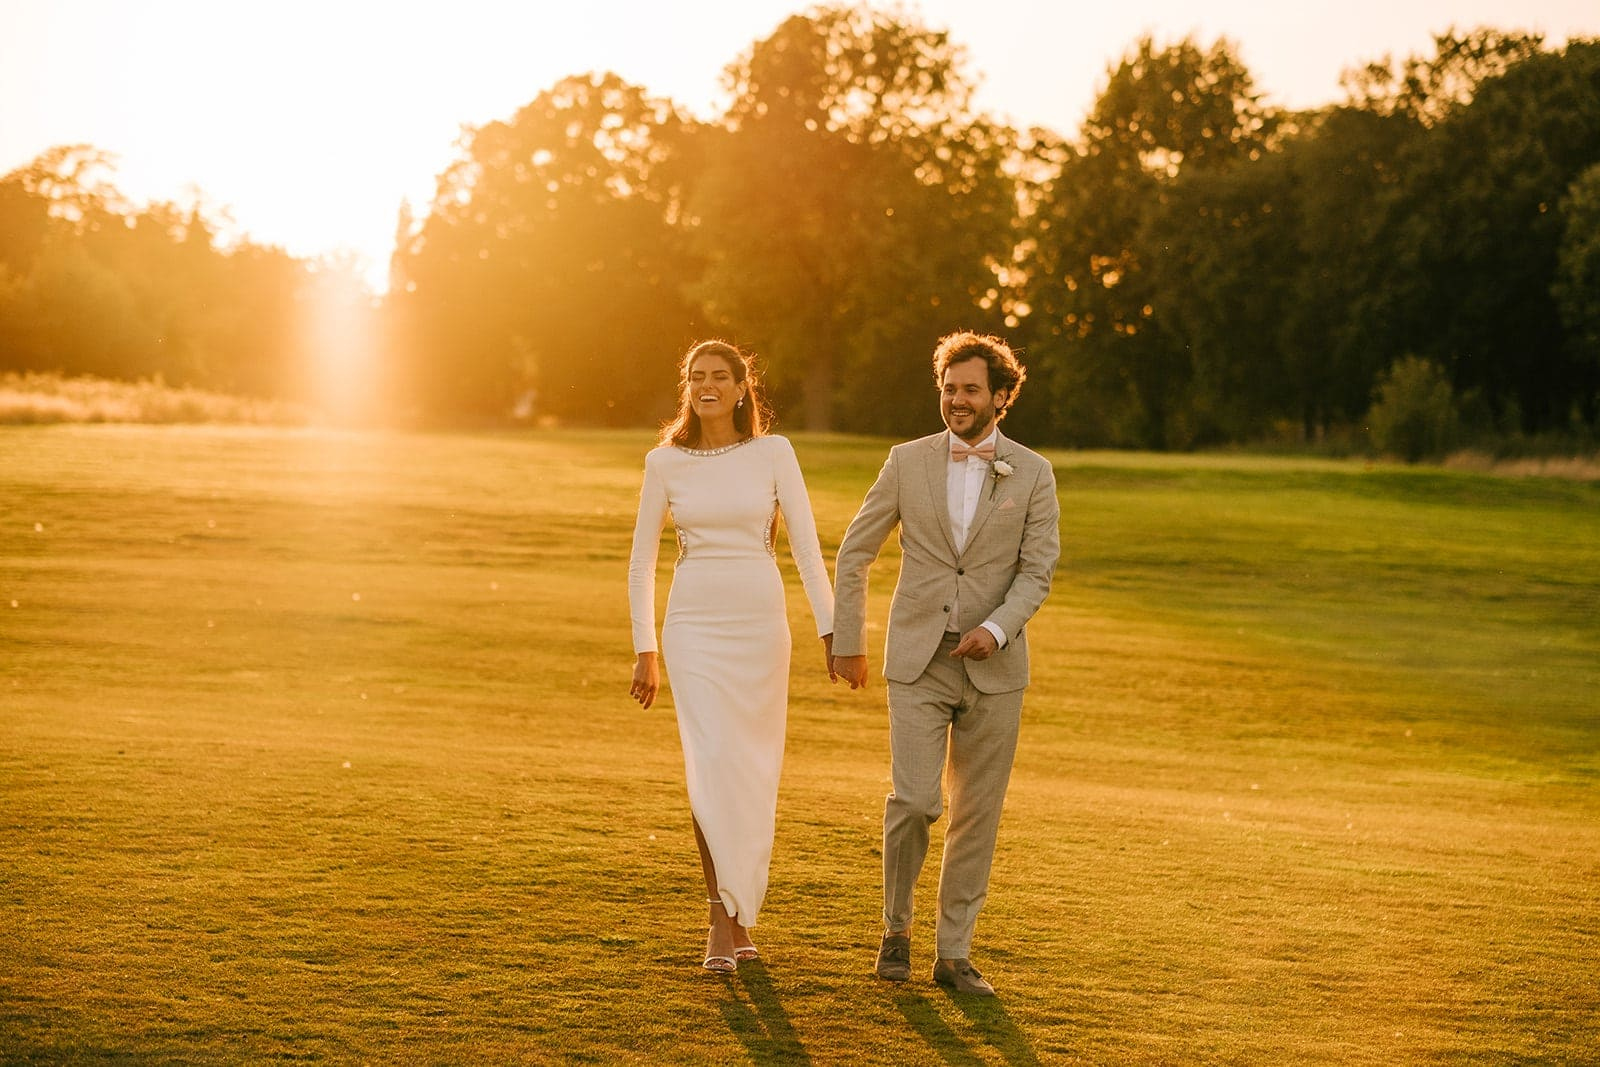 Natali & Alex walking in some stunning light